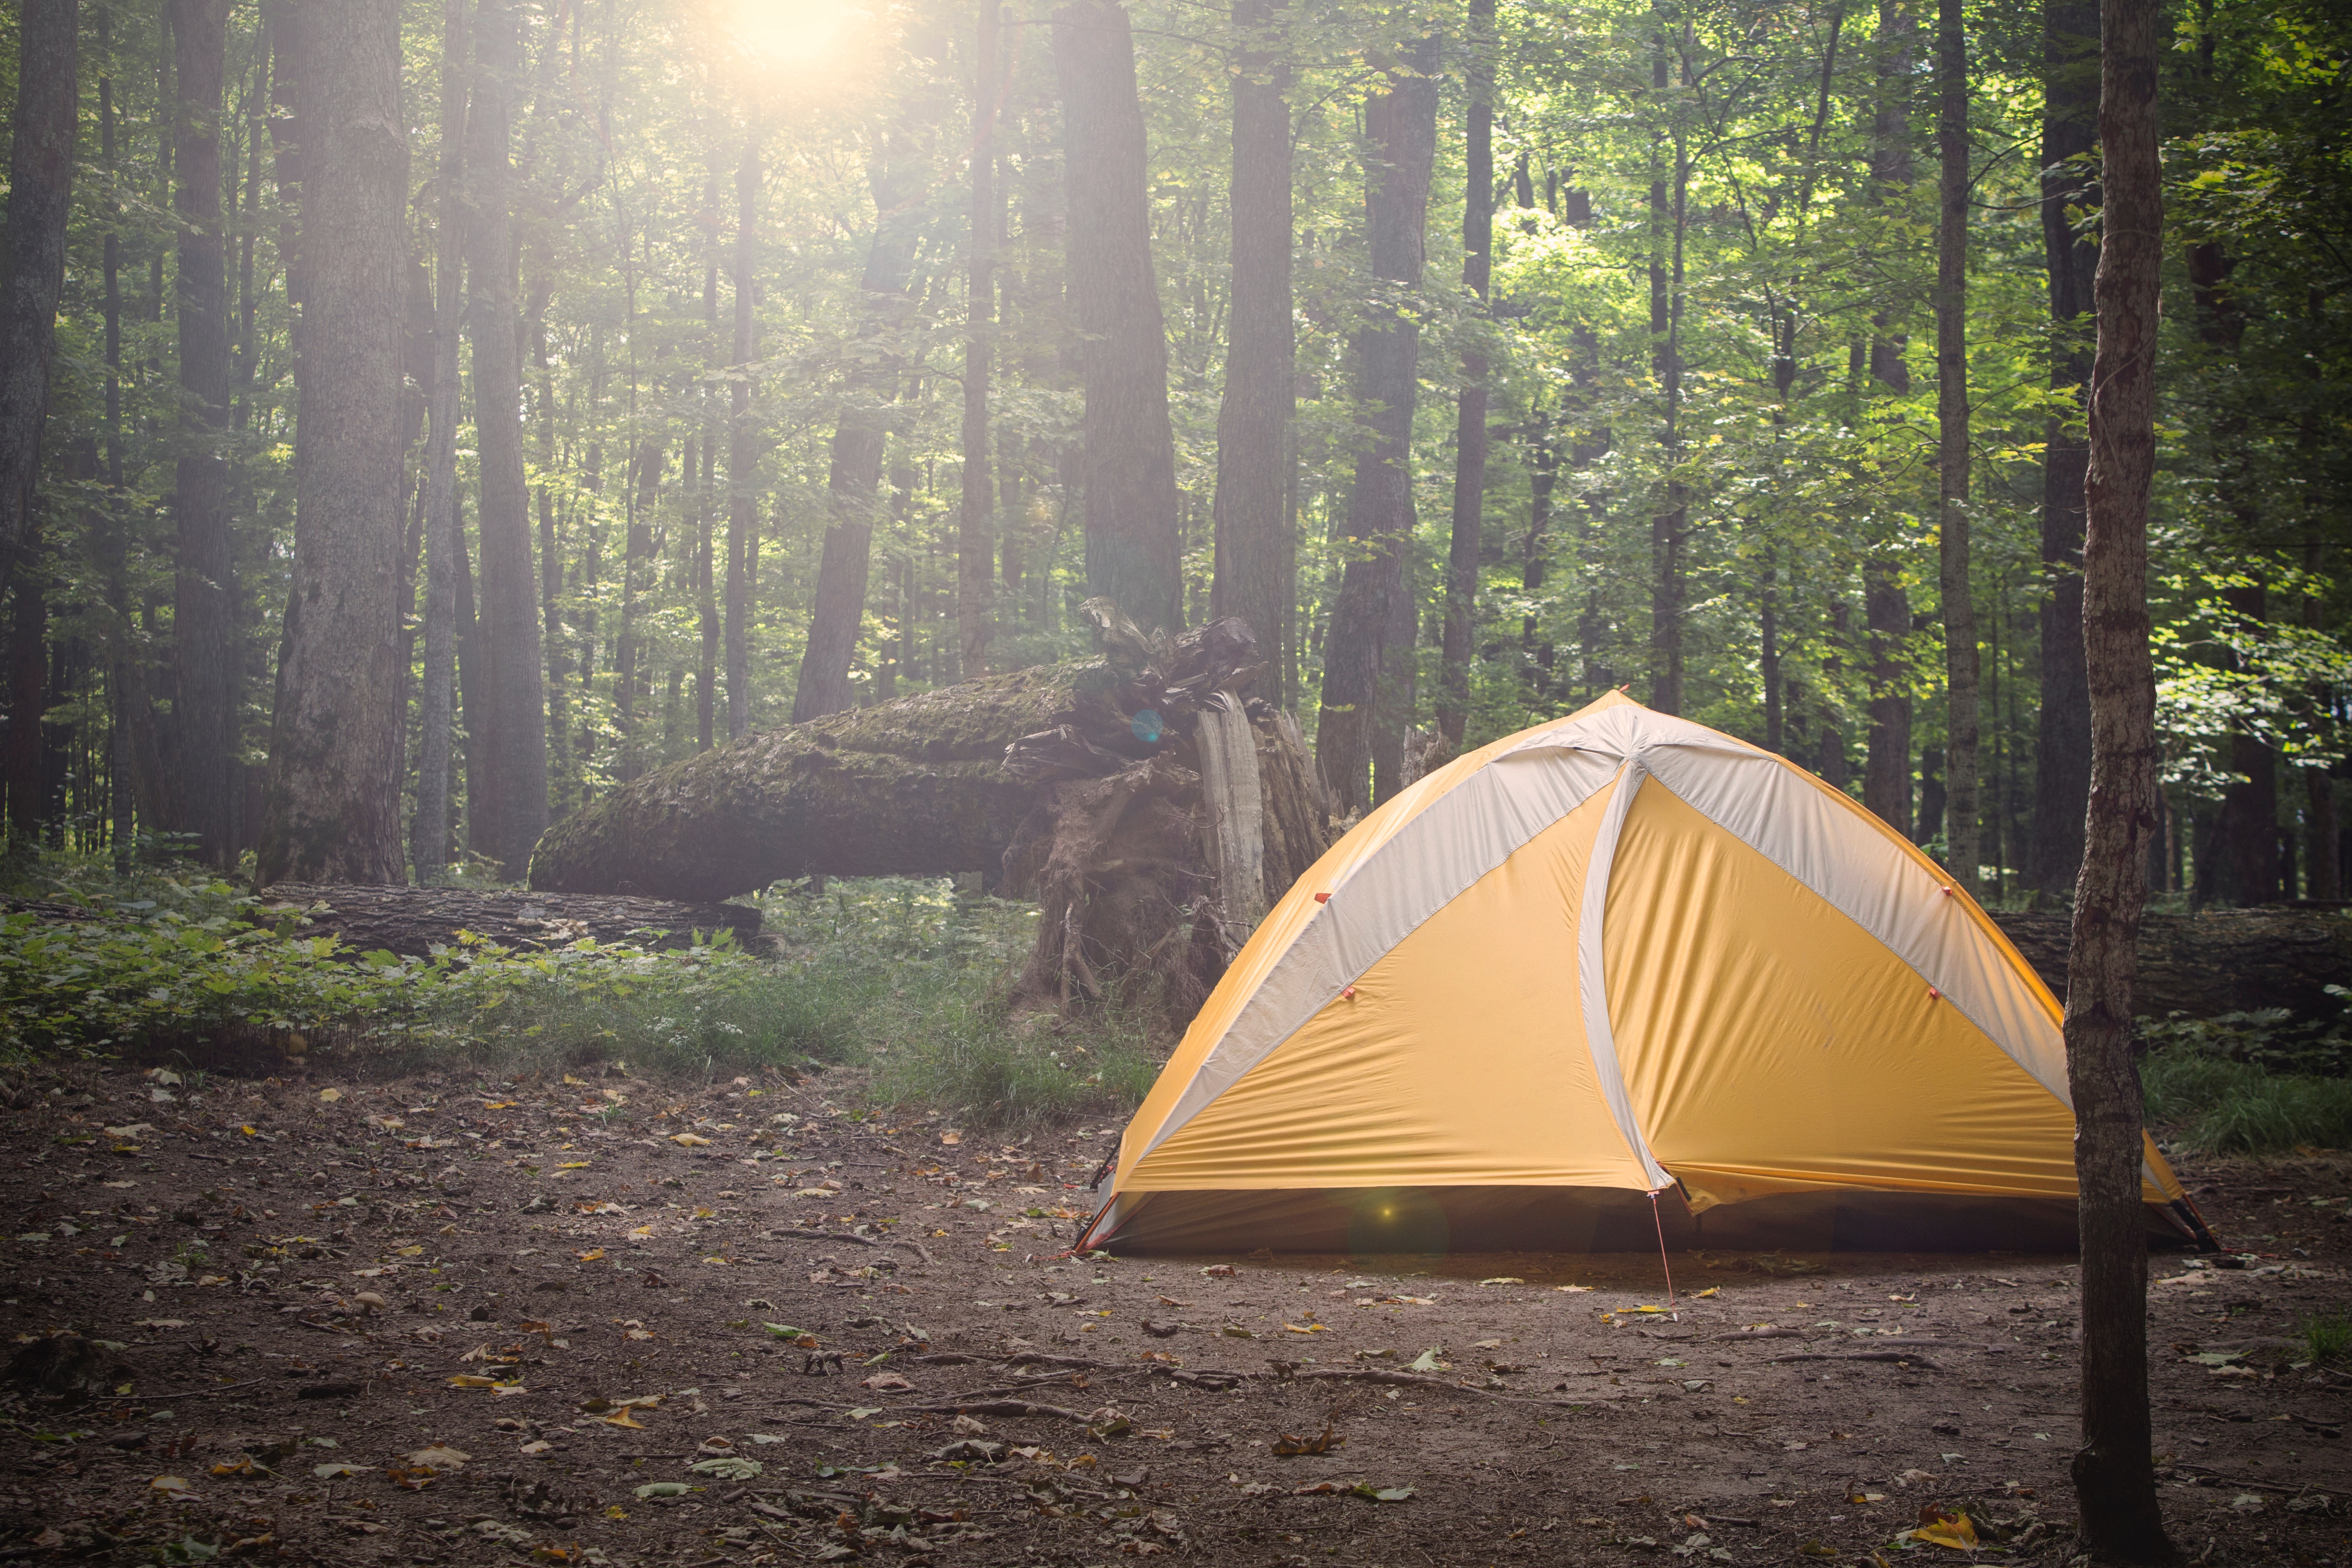 camping tent in a clearing